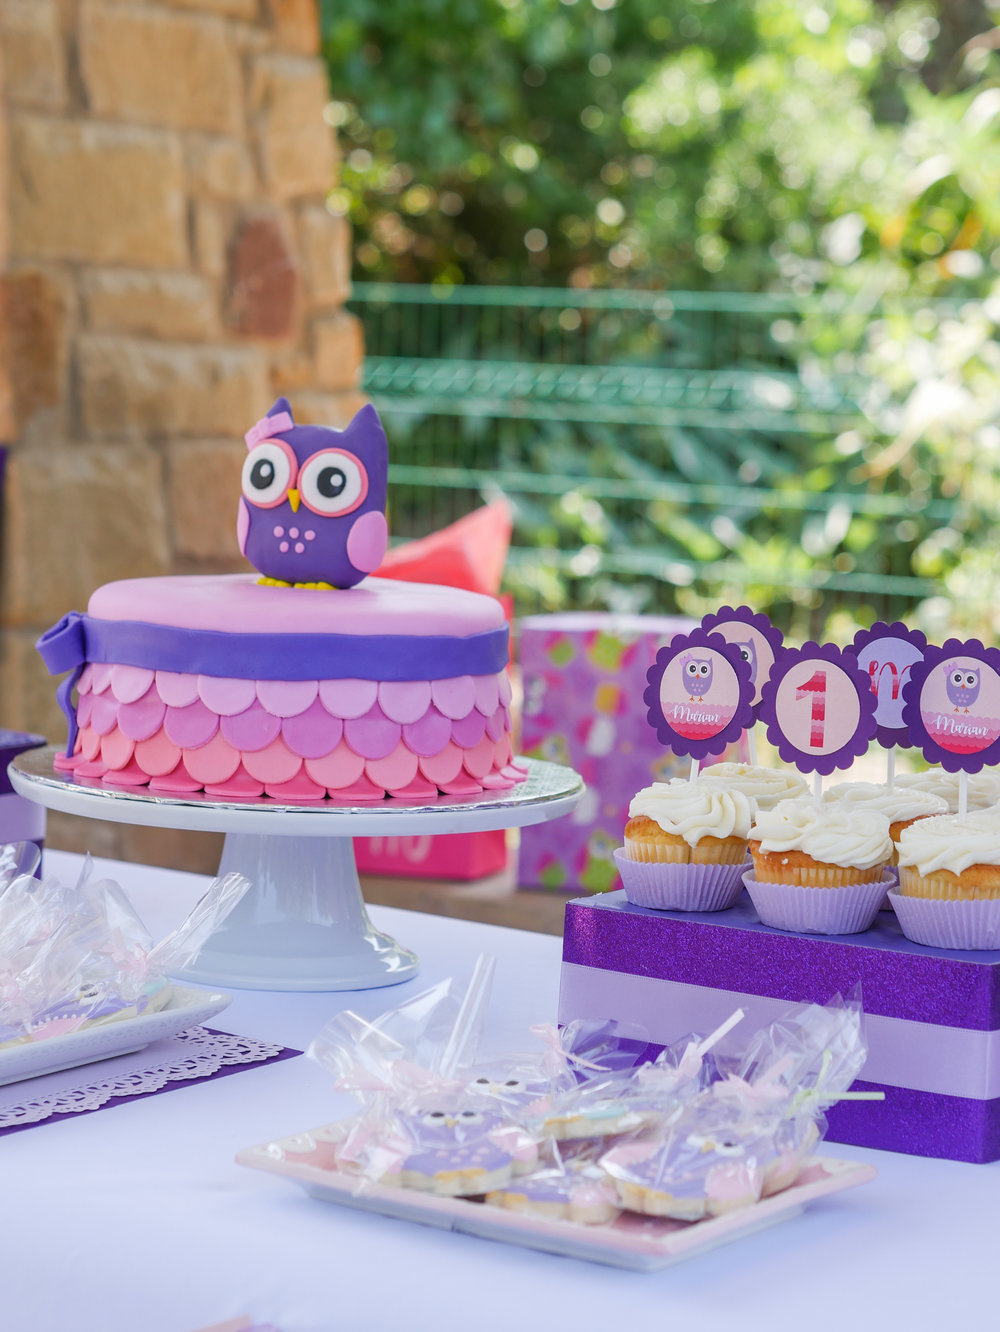 How cute is this owl topped cake? This sweet owl cake topper is the perfect detail for this Look Whoo's One Birthday Party. Full details on this owl themed first birthday party can be found on www.minteventdesign.com. See over 10 creative party ideas in the Owl First Birthday Party by party stylist Mint Event Design in Austin, Texas. #birthdayparty #partyideas #partyinspiration #owl #firstbirthday #owlcookies #birthdaycookies #birthdaycake #owlcake #partycupcakes